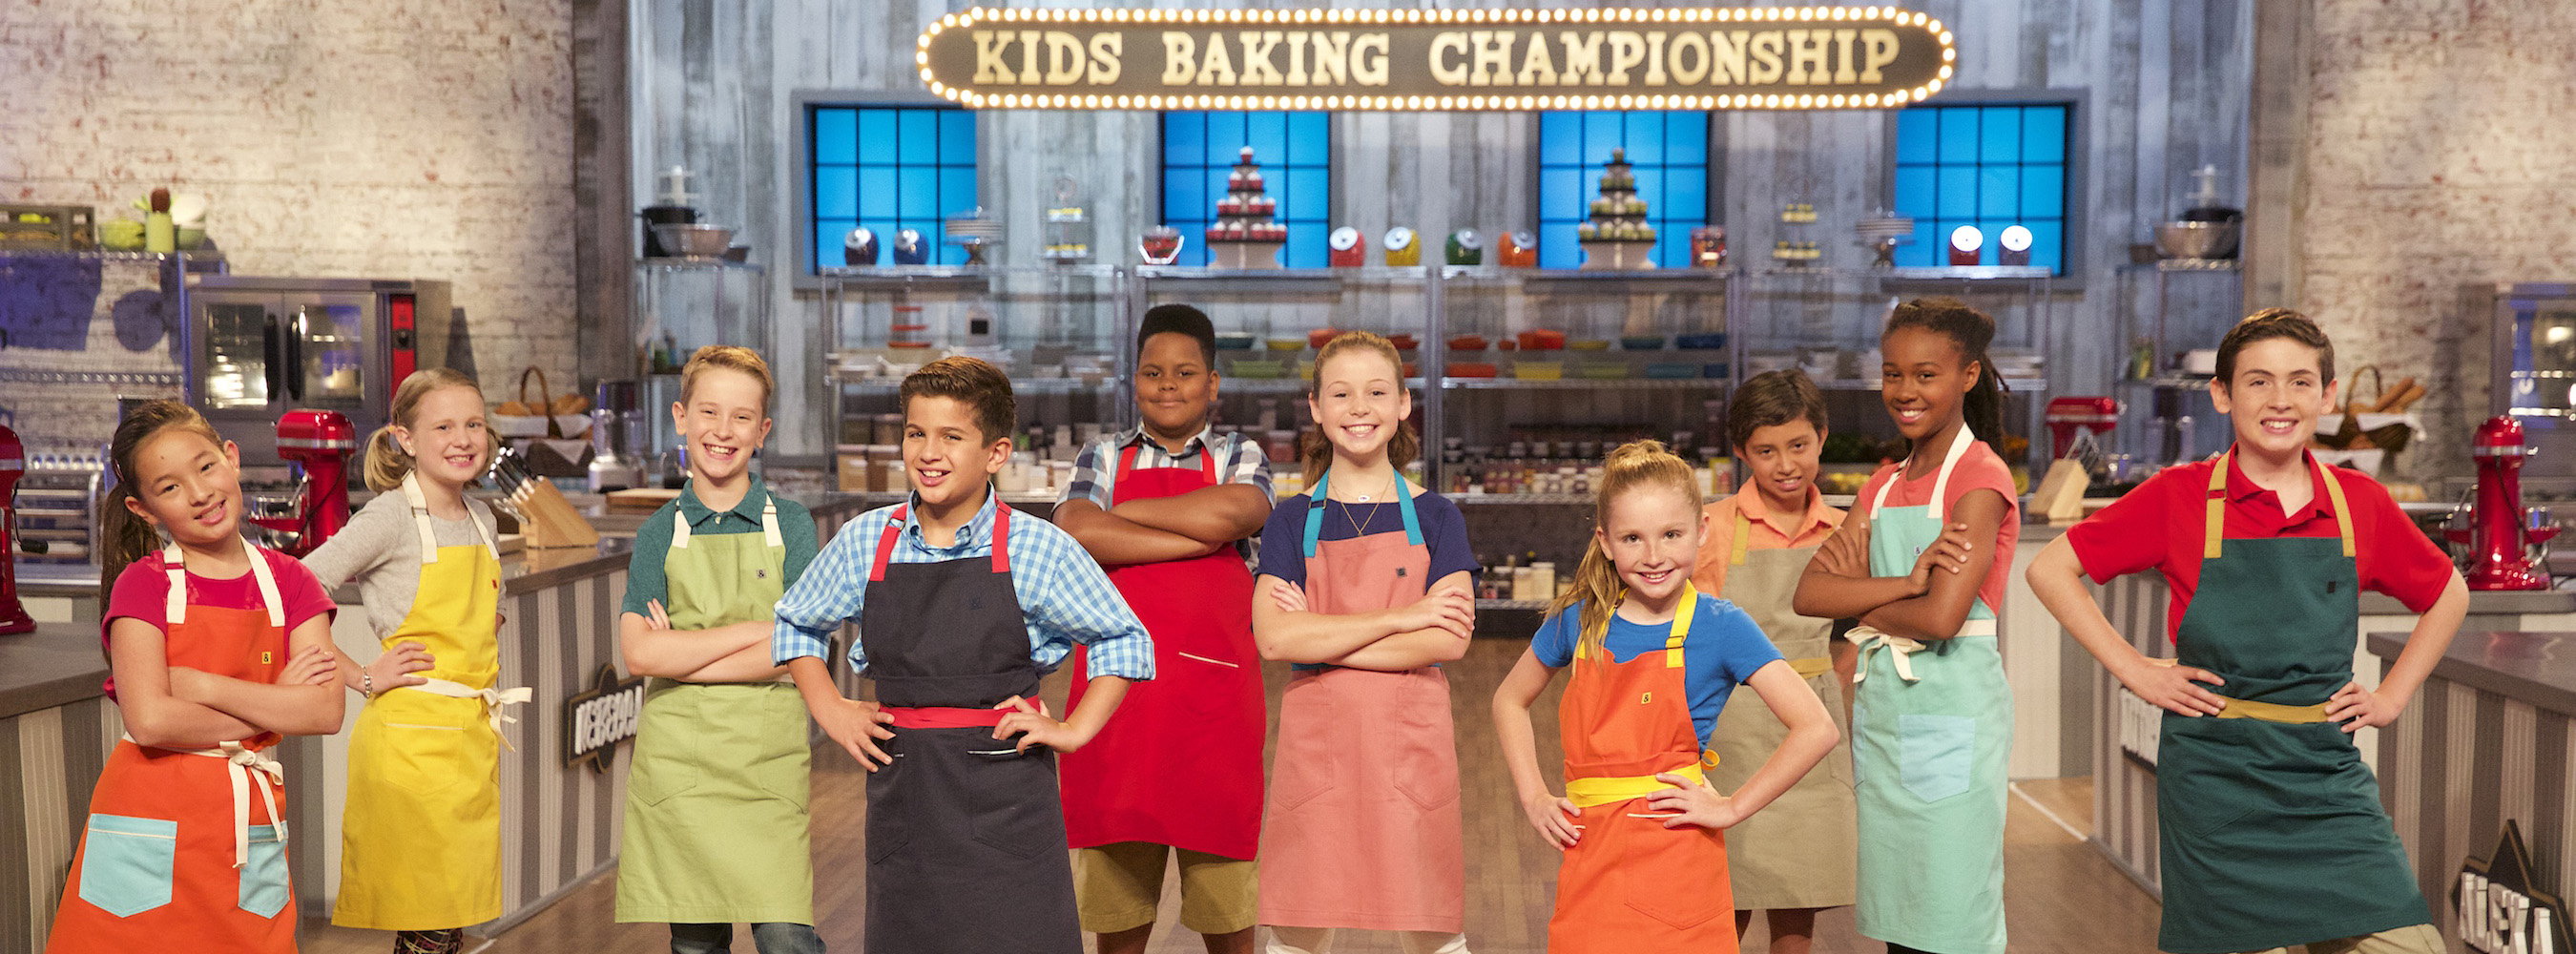 Kids Baking Championship Returns With Hosts Valerie Bertinelli And